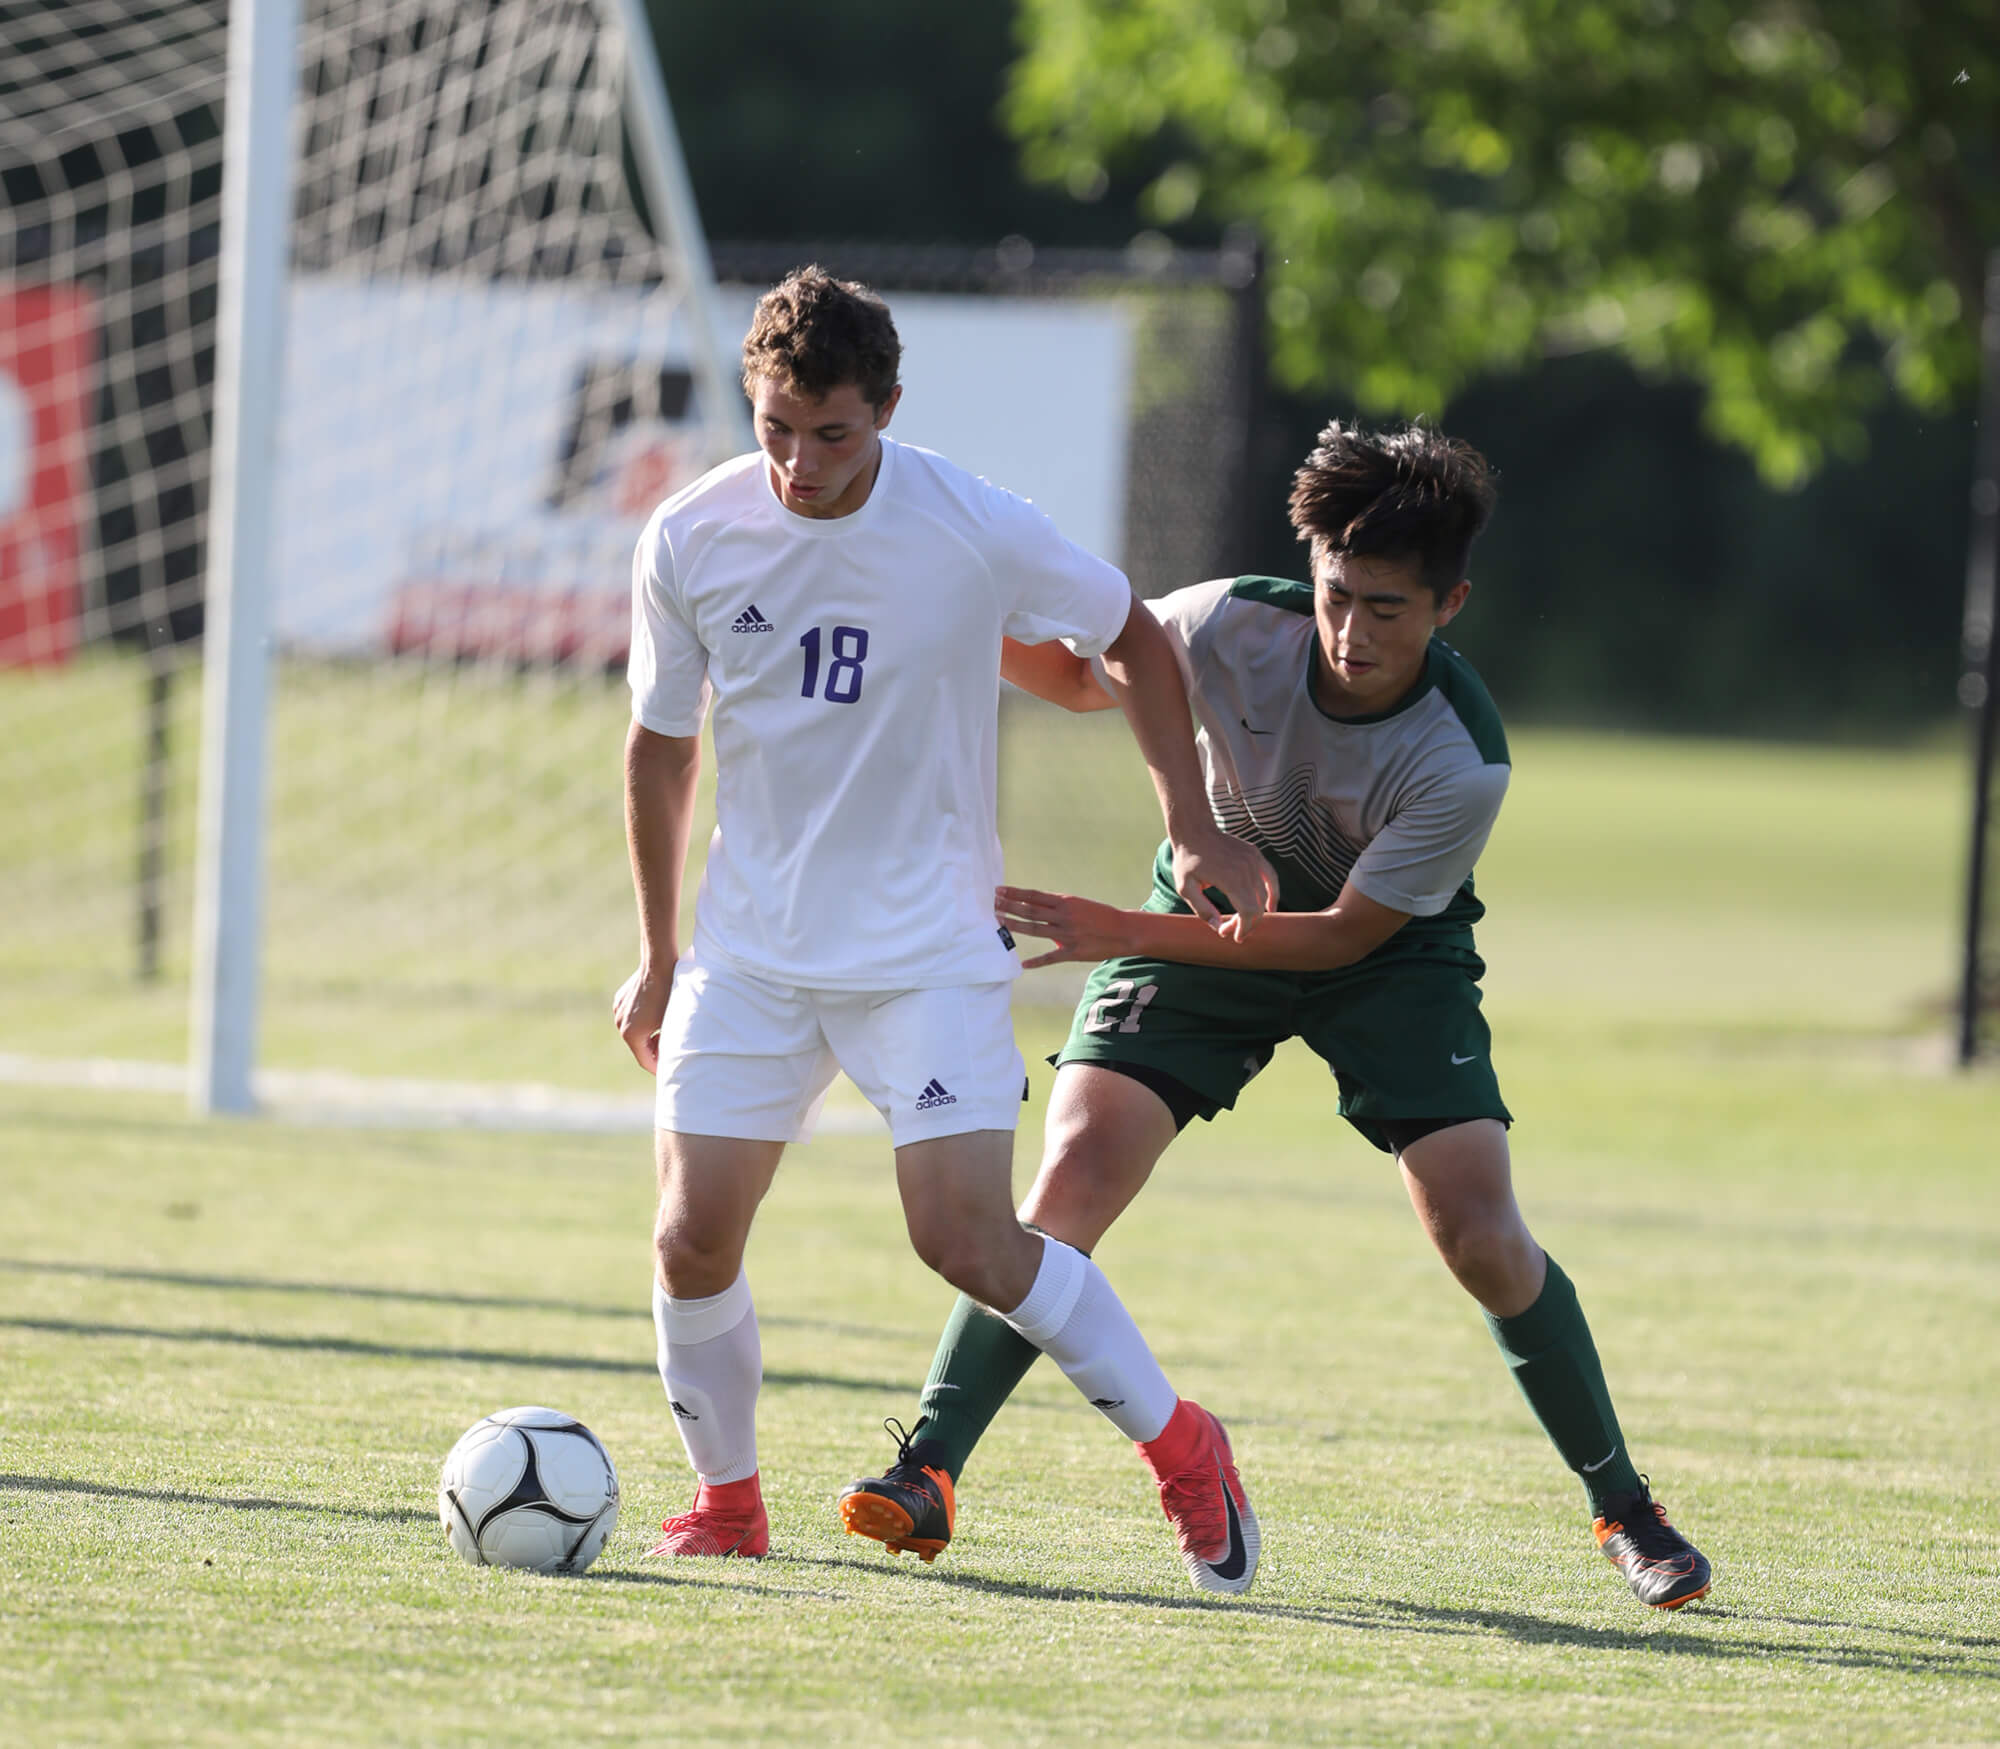 Soccer: 2021 Postseason Assignments